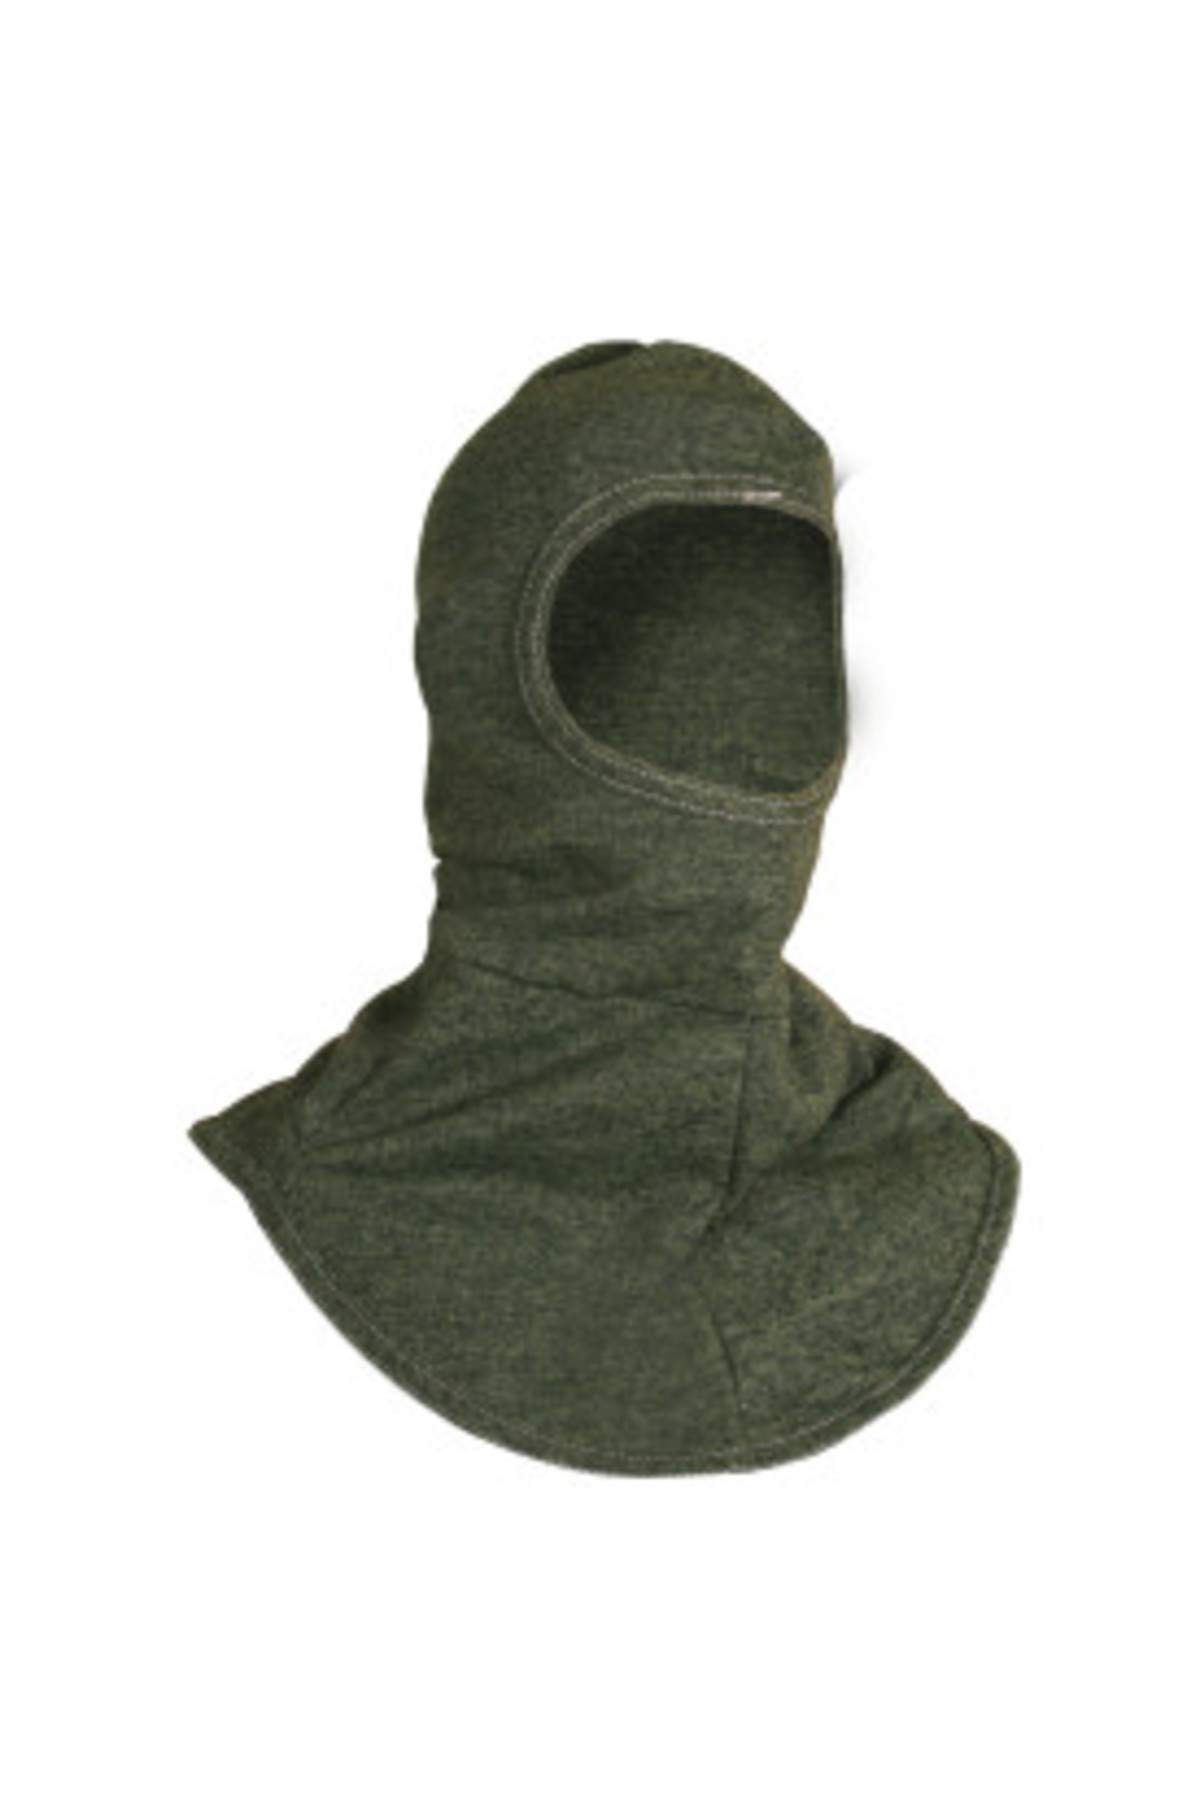 National Safety Apparel H61RK FR Carbon Double Layer Hood, 27 Calorie, One Size, Green